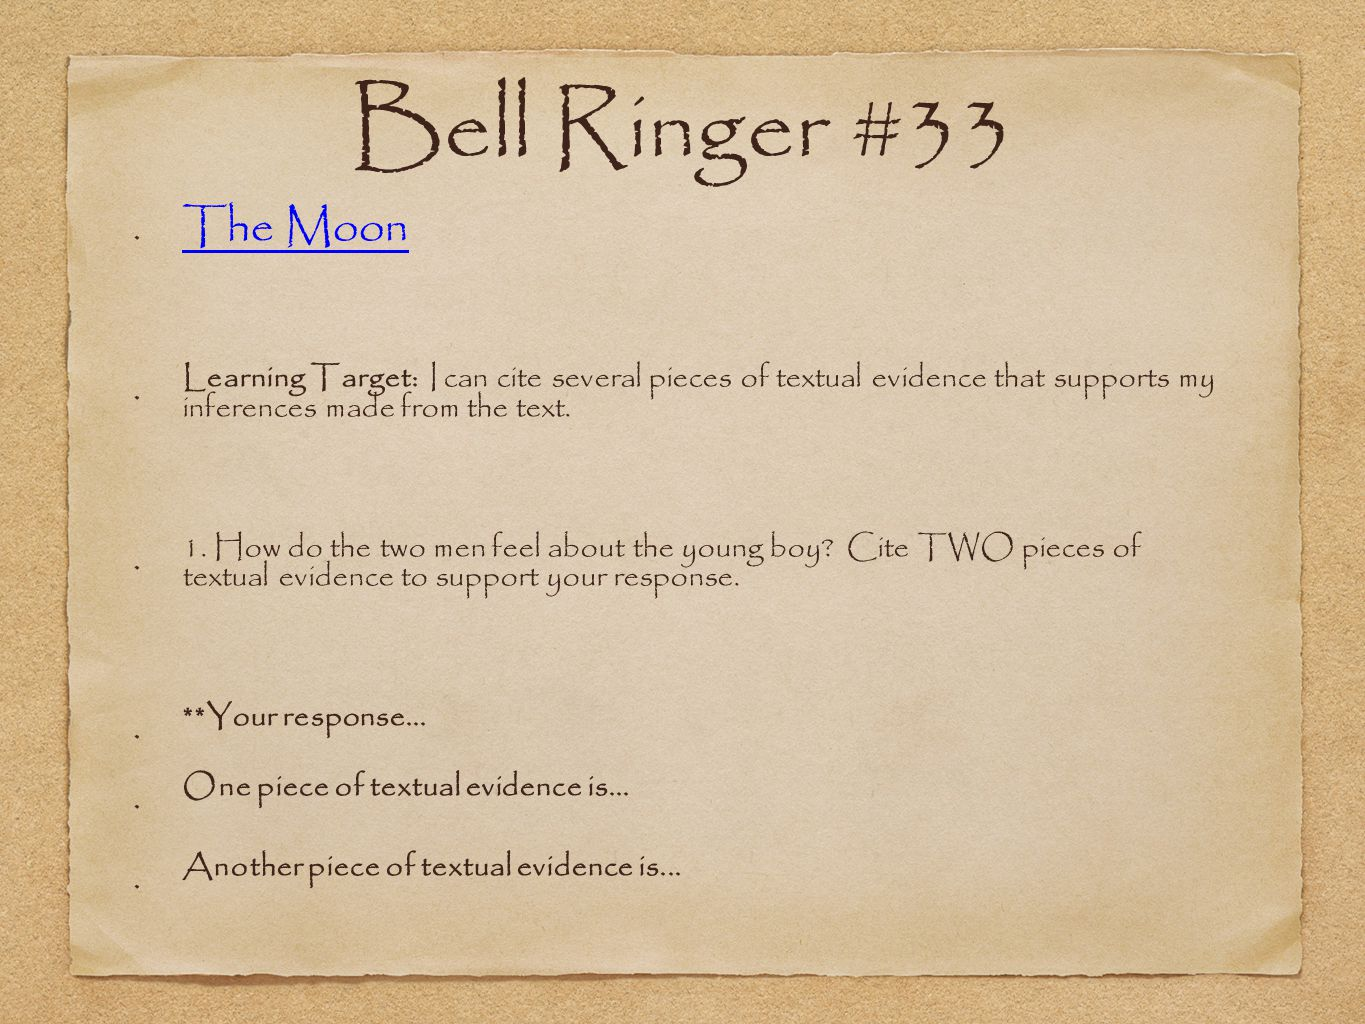 Bell Ringer #33 The Moon Learning Target: I can cite several pieces of textual evidence that supports my inferences made from the text.